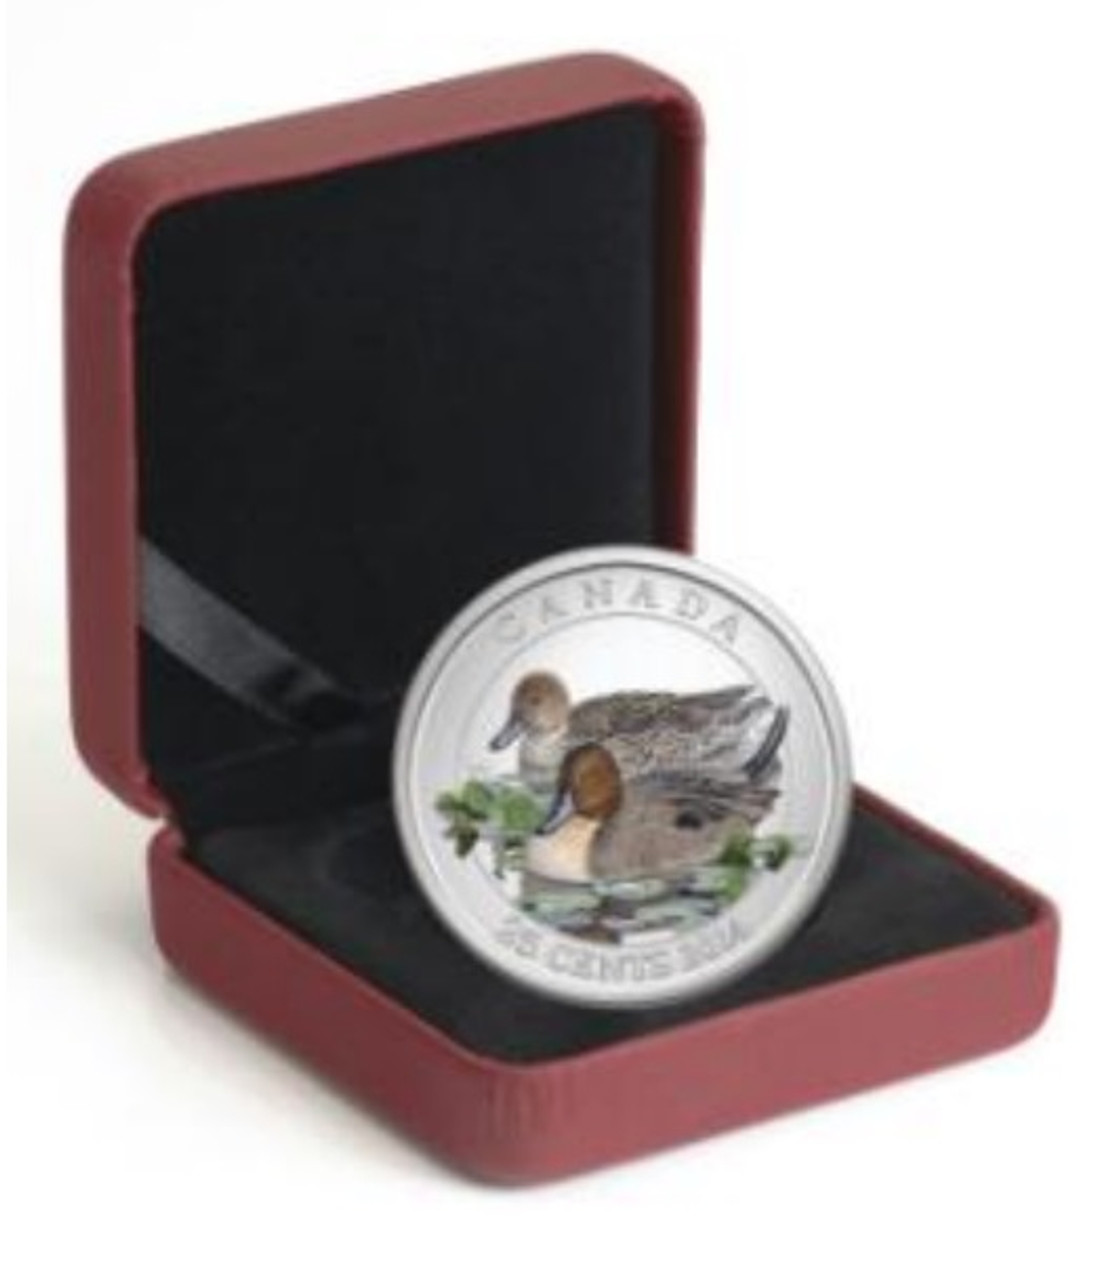 2014 Canada Scarlet Tanager 2014 Coloured Coin In Royal Canadian Mint Pack.